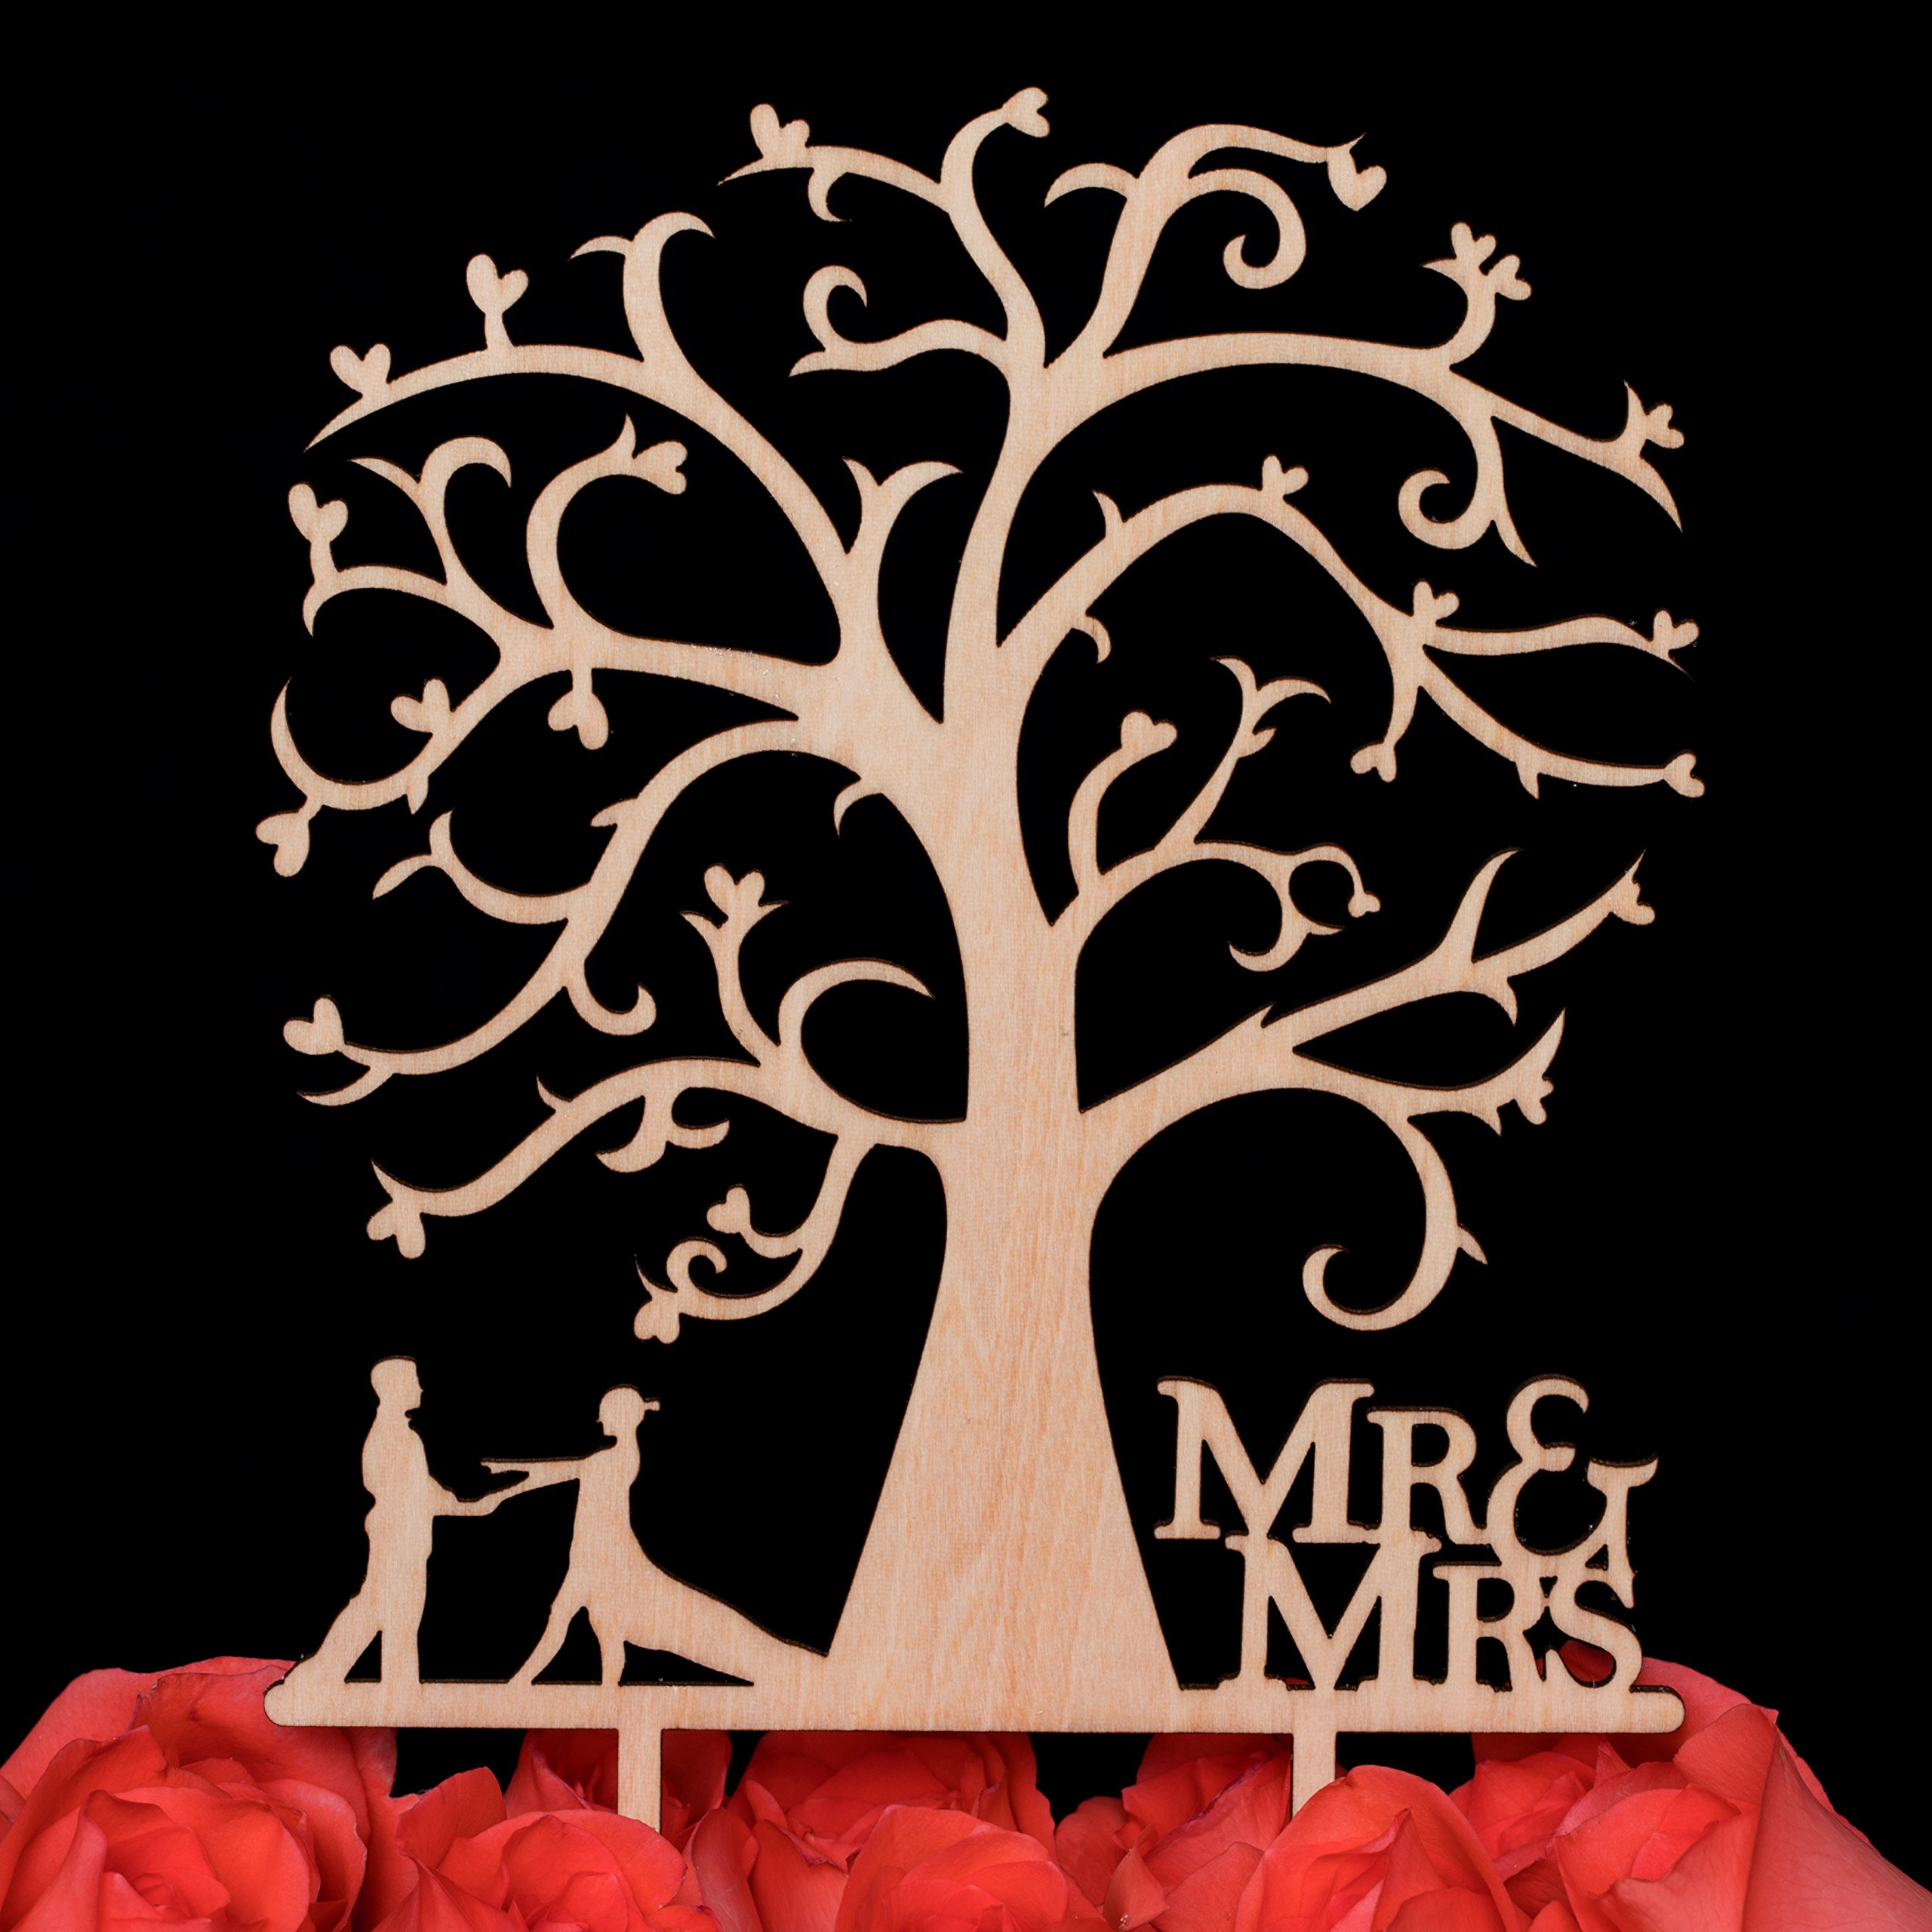 LOVENJOY Gift Box Pack Mr and Mrs Dancing Bride and Groom Tree Silhouette Rustic